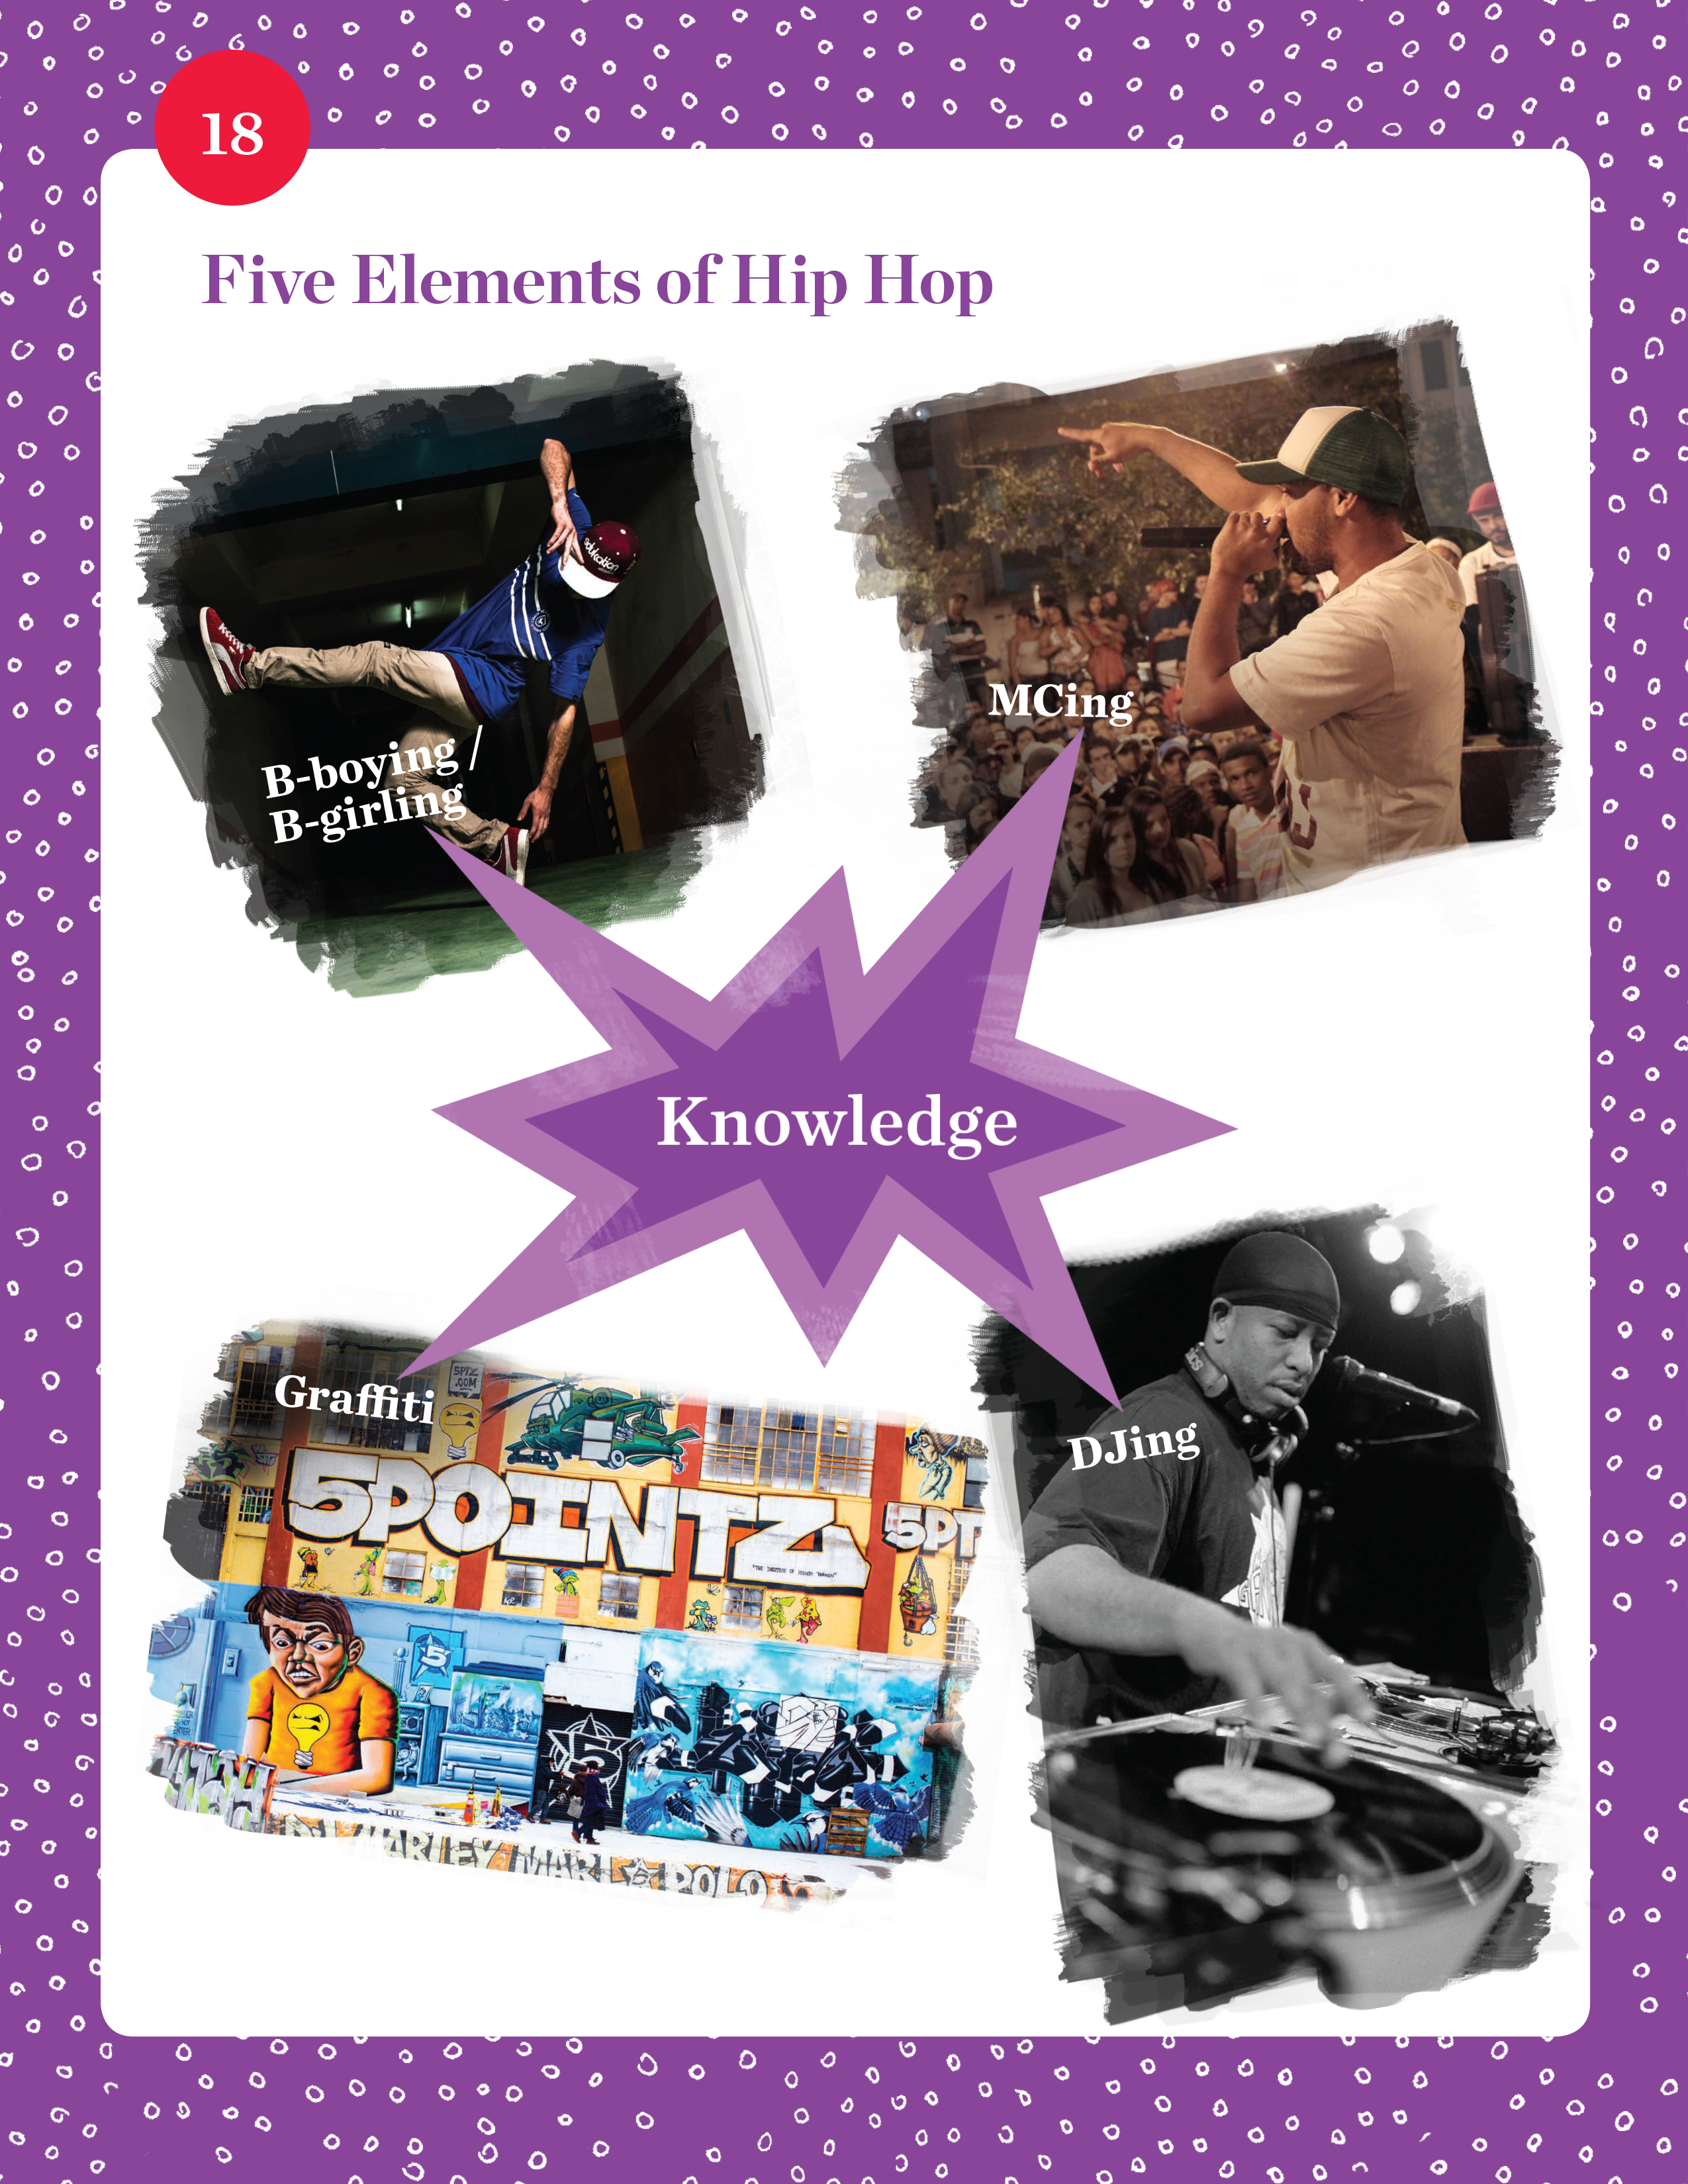 Five Elements of Hip Hop student activity